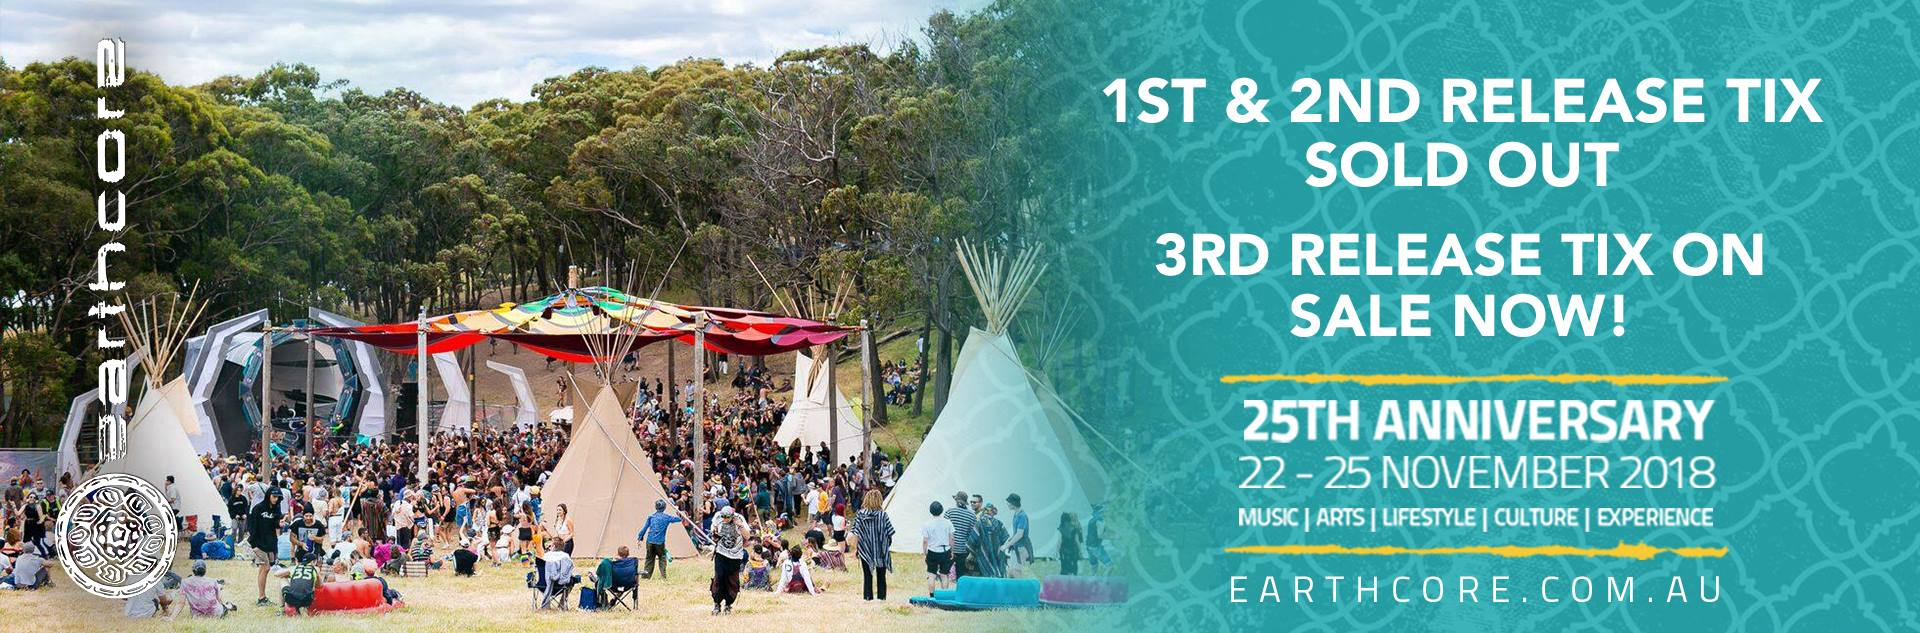 Find tickets from Earthcore Events